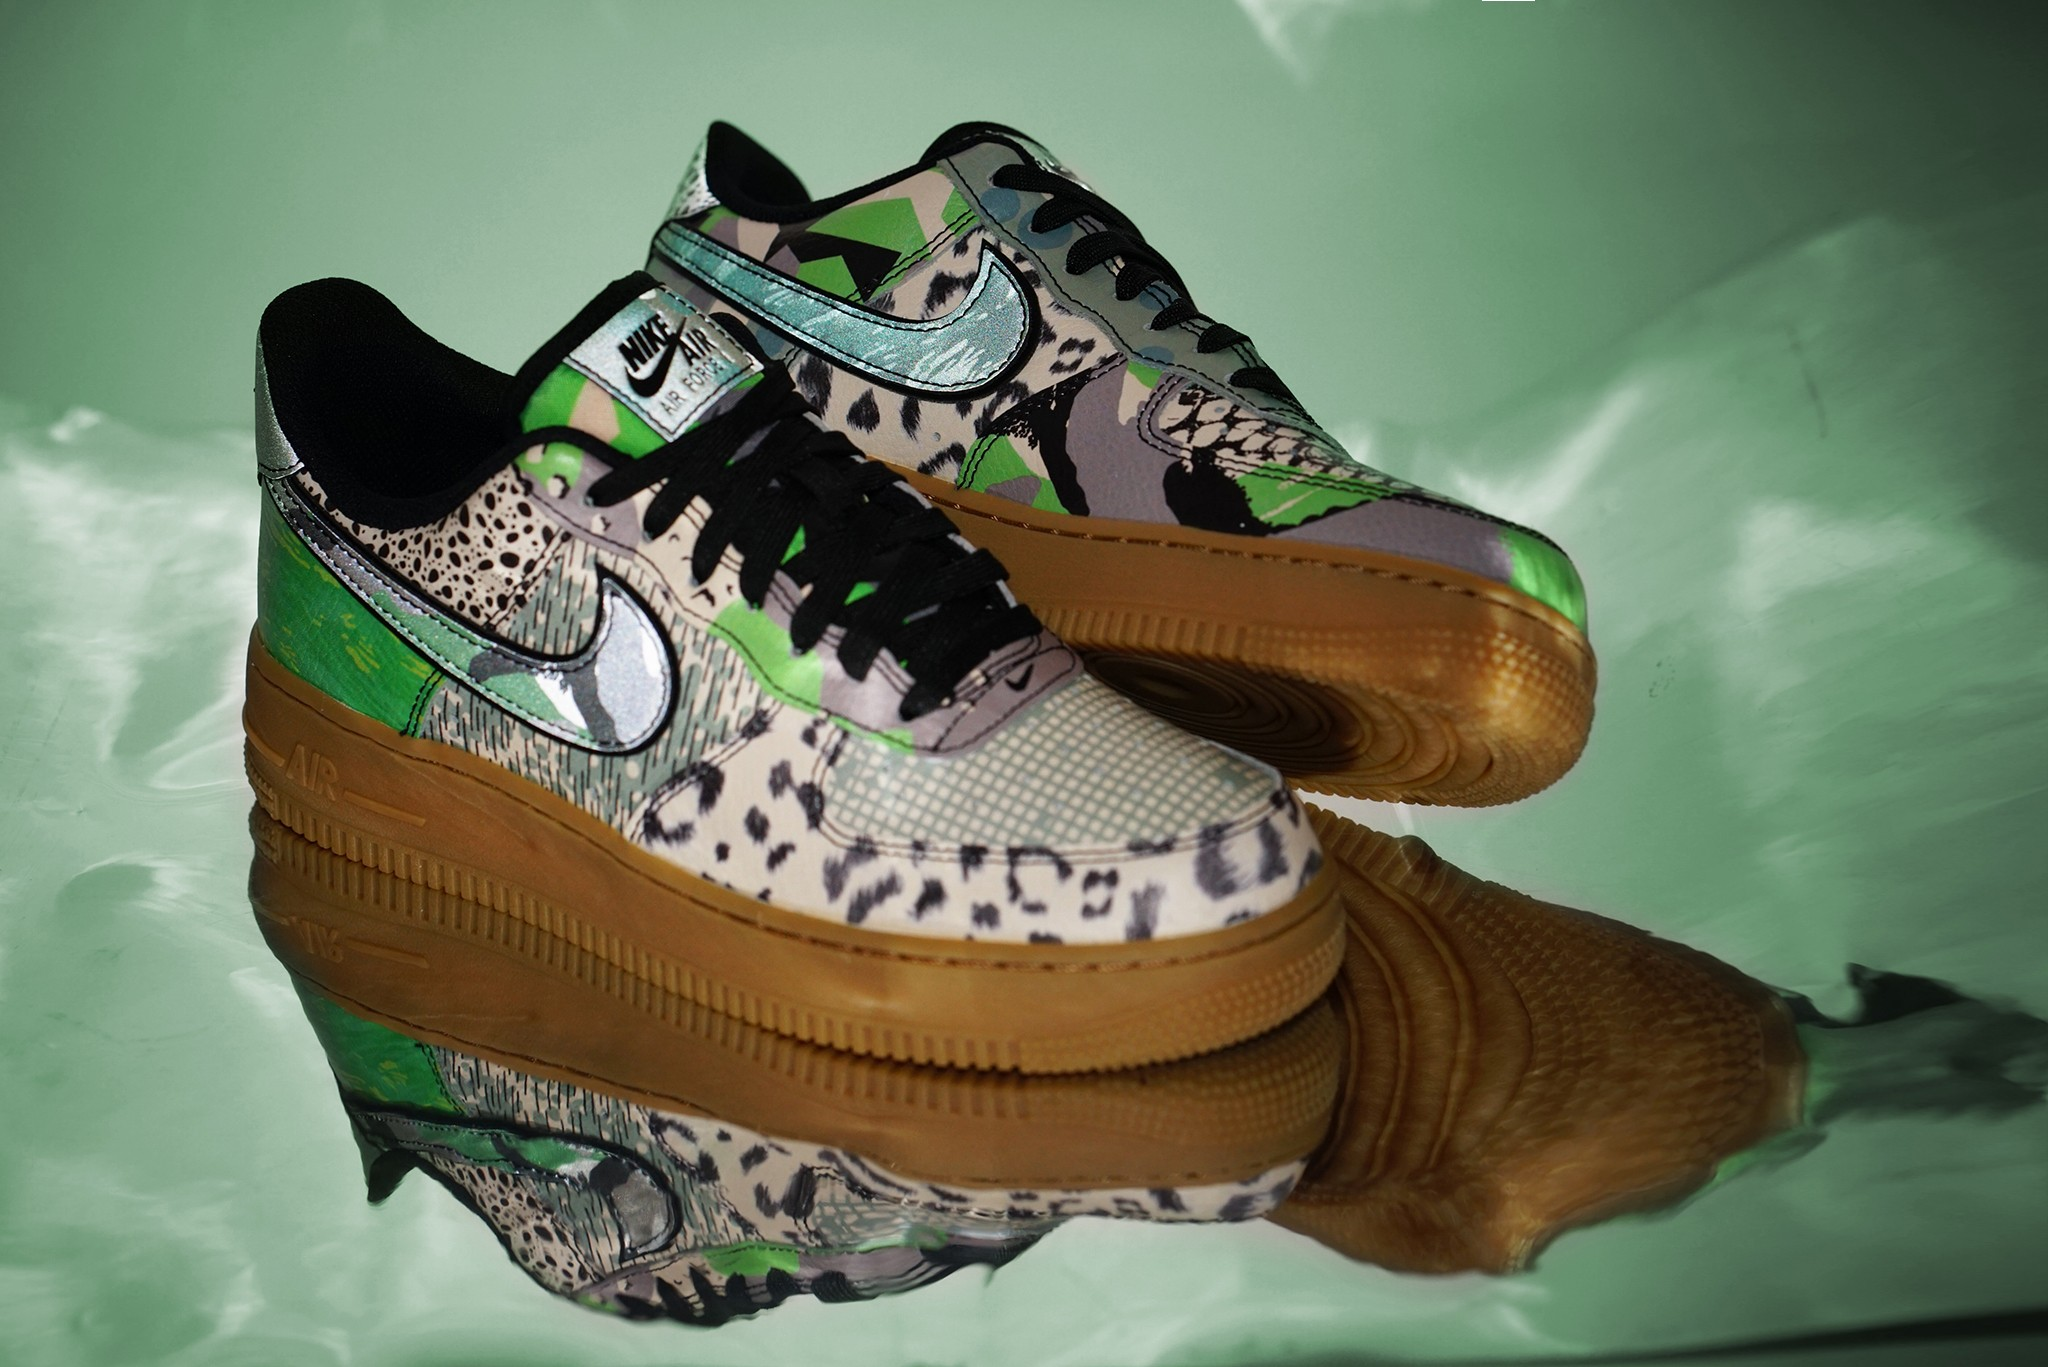 Nike Air Force 1 City of dreams